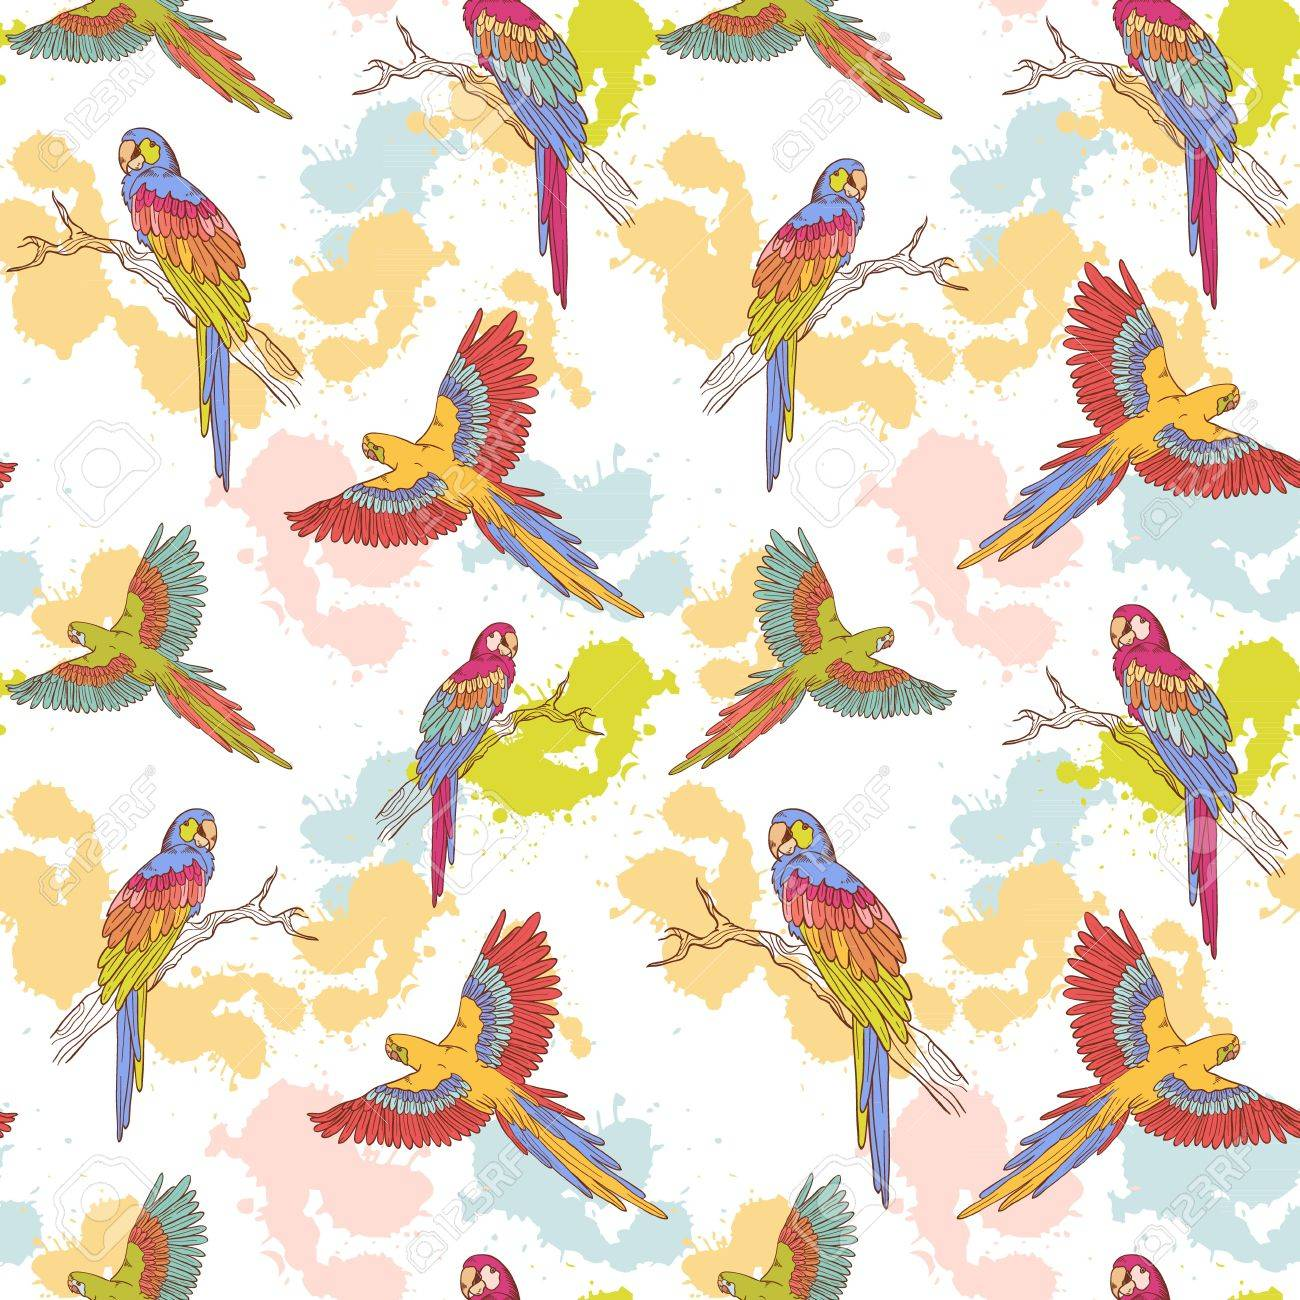 Parrot ara seamless grunge colorful pattern Stock Vector - 14653623